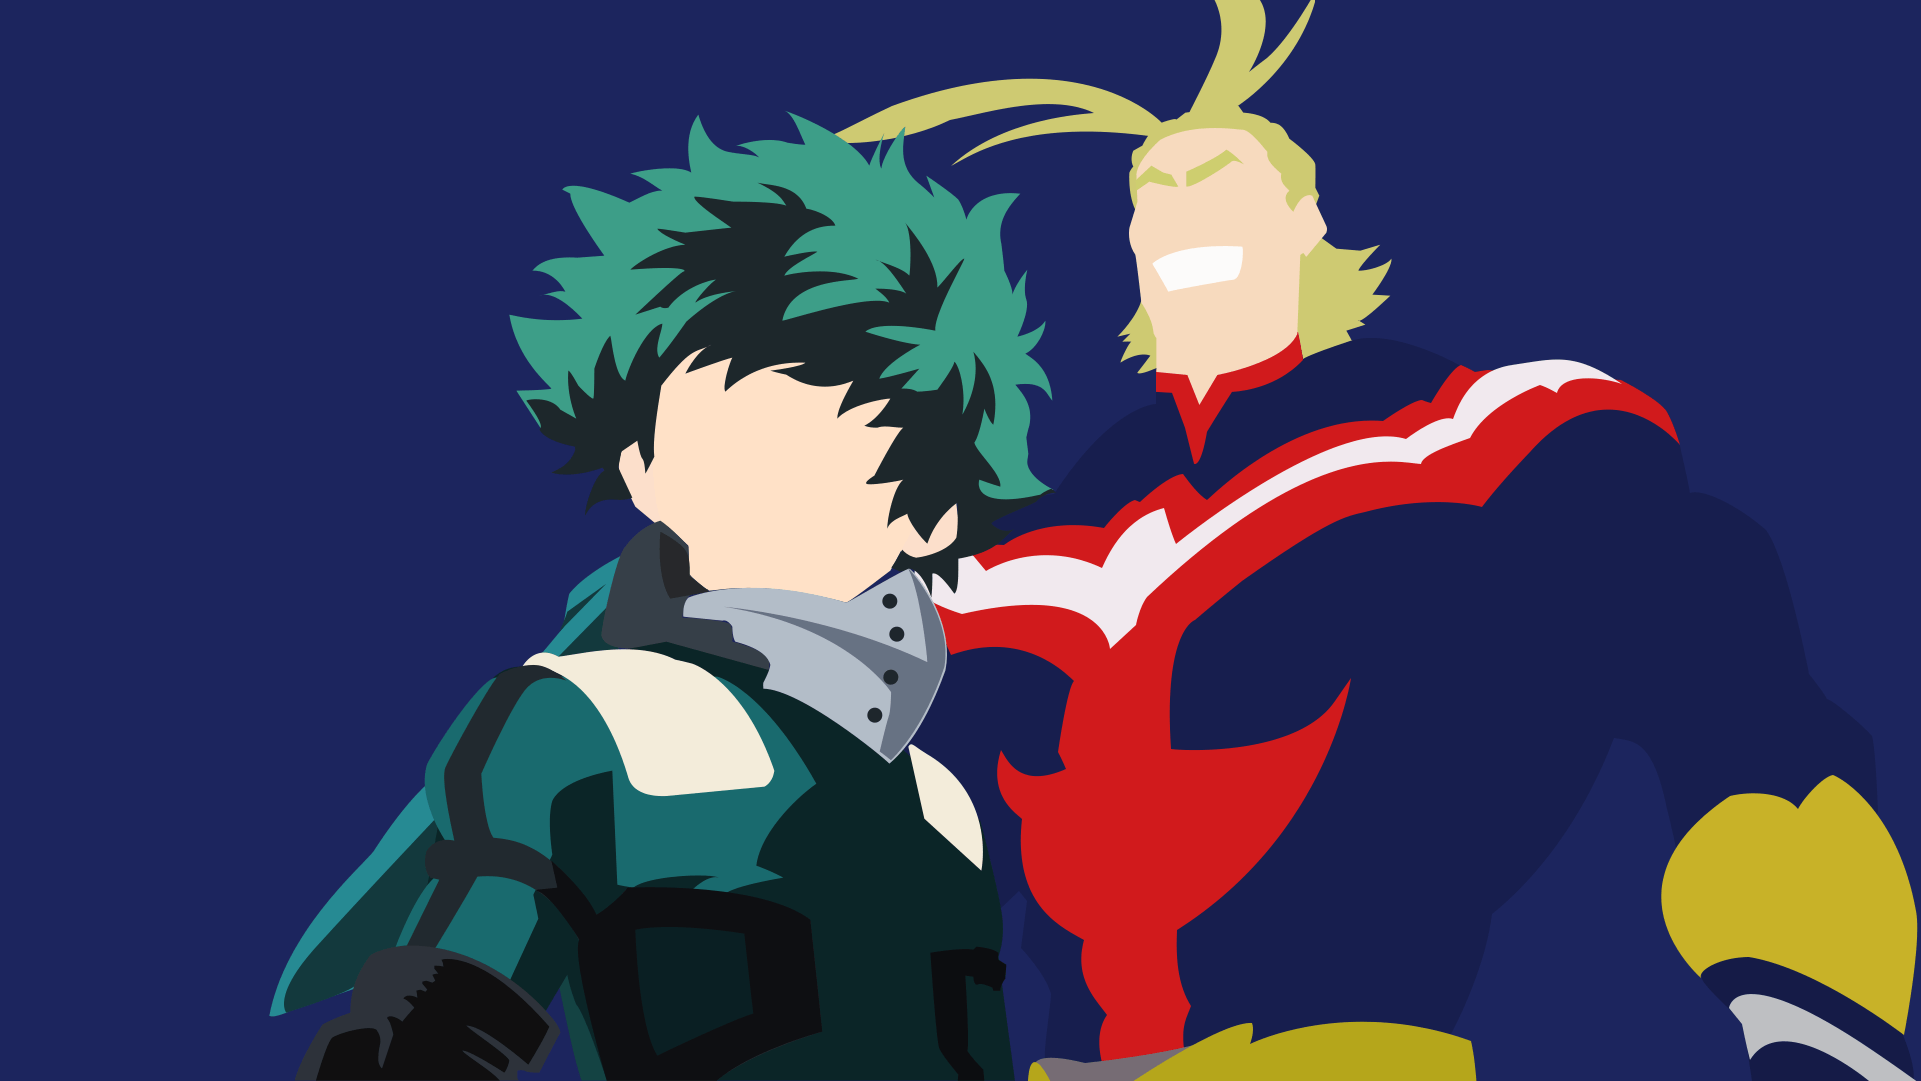 Discover more posts about boku no hero academia wallpapers. My Hero Academia 3 Wallpapers - Wallpaper Cave